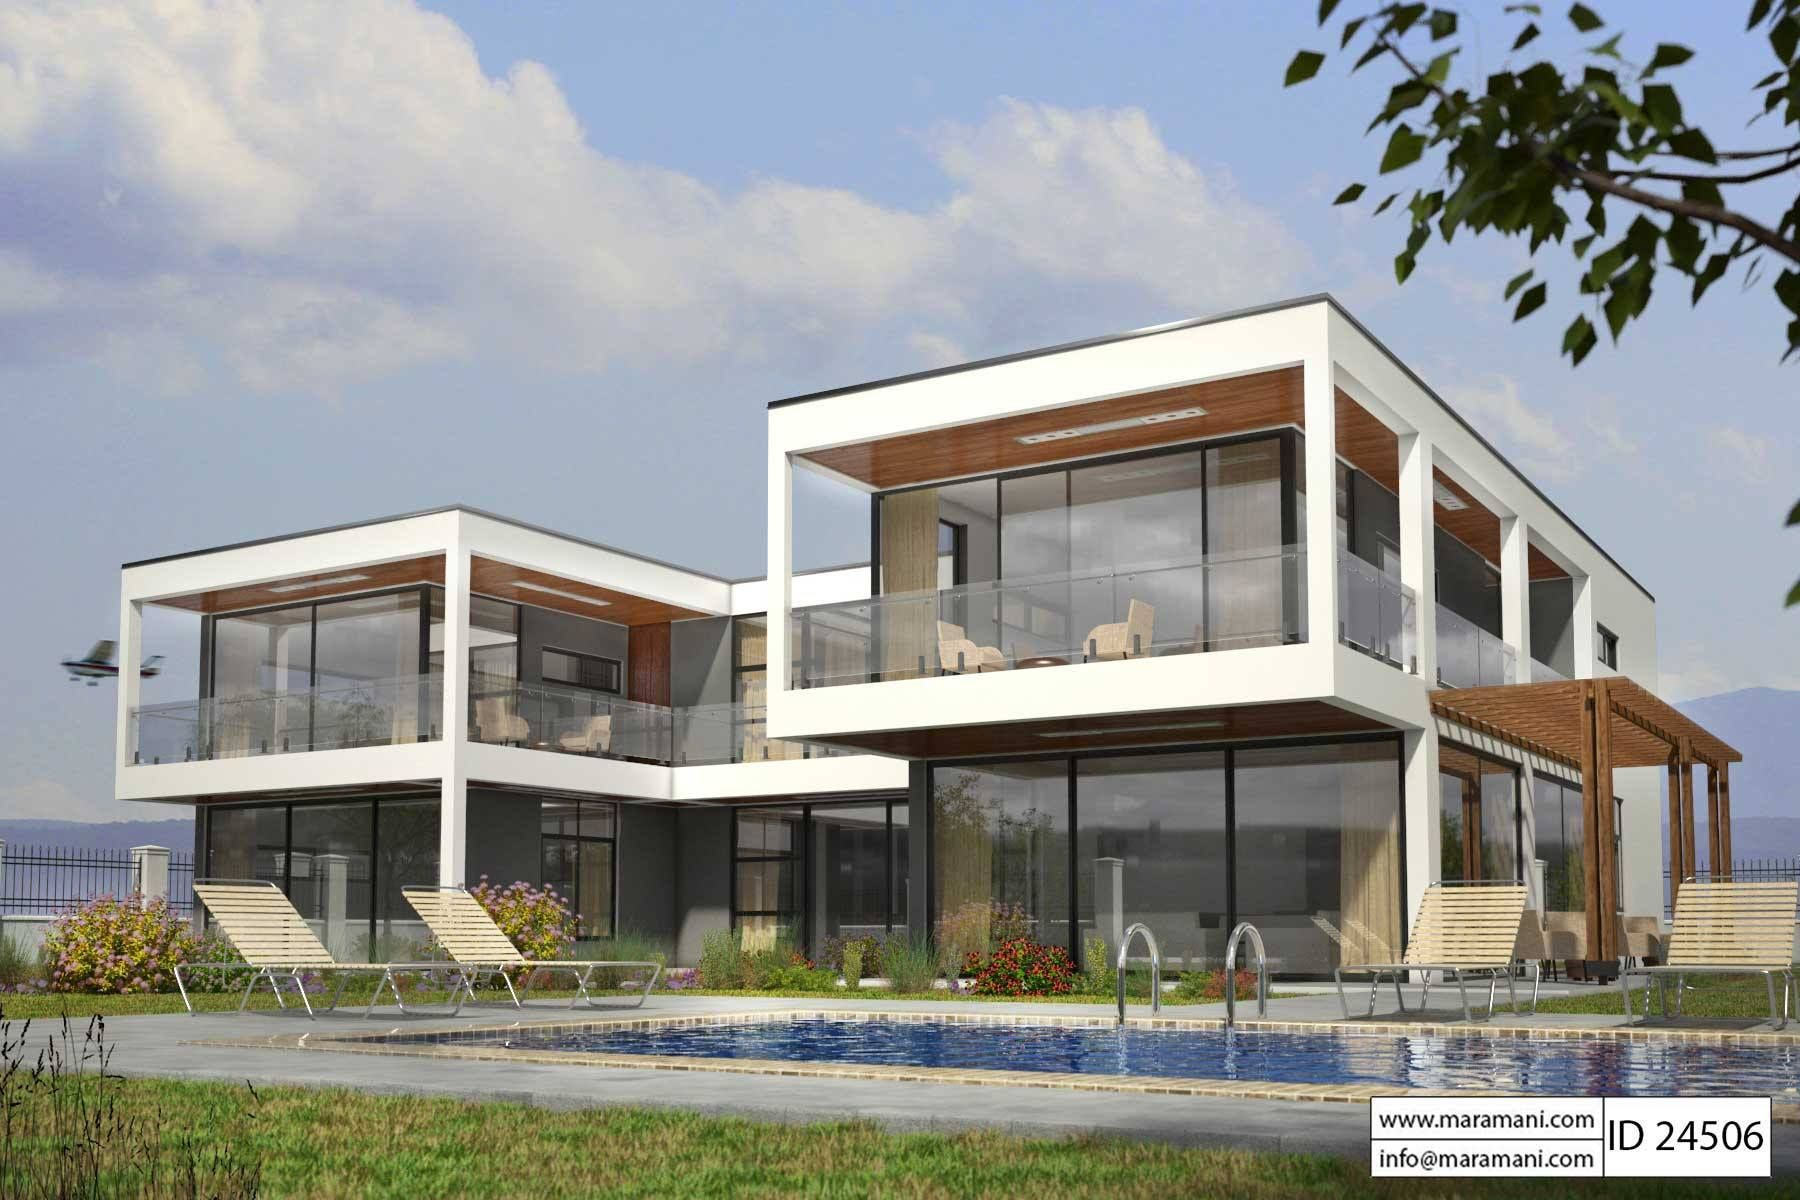 4 Bedroom House Plan Id 24506 Modern Glass House House Plans Glass House Design